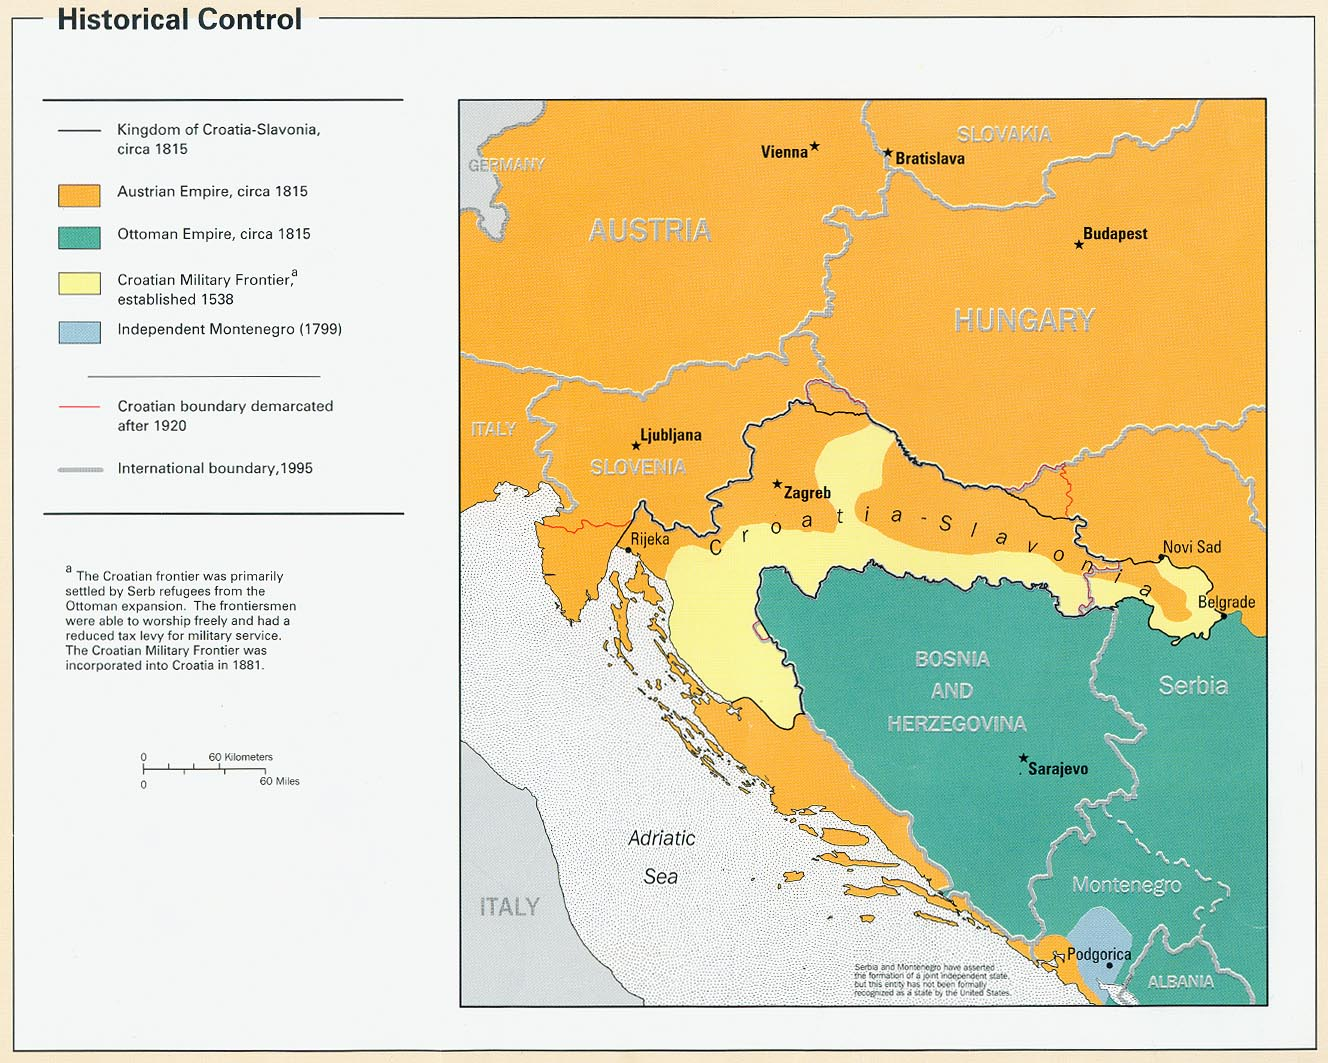 Free Croatia Maps - Croatia interactive map